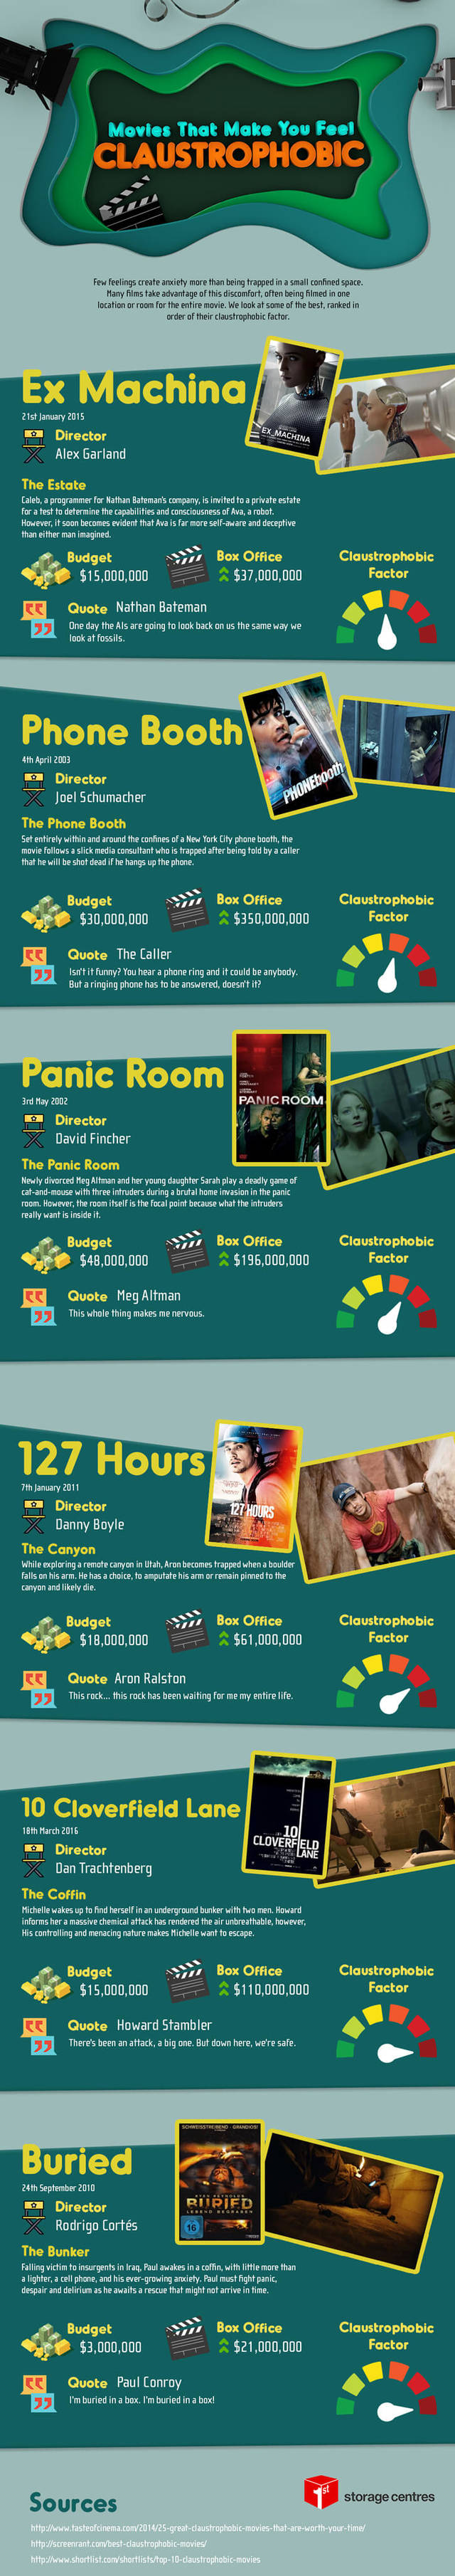 Movies that make you feel claustrophobic1